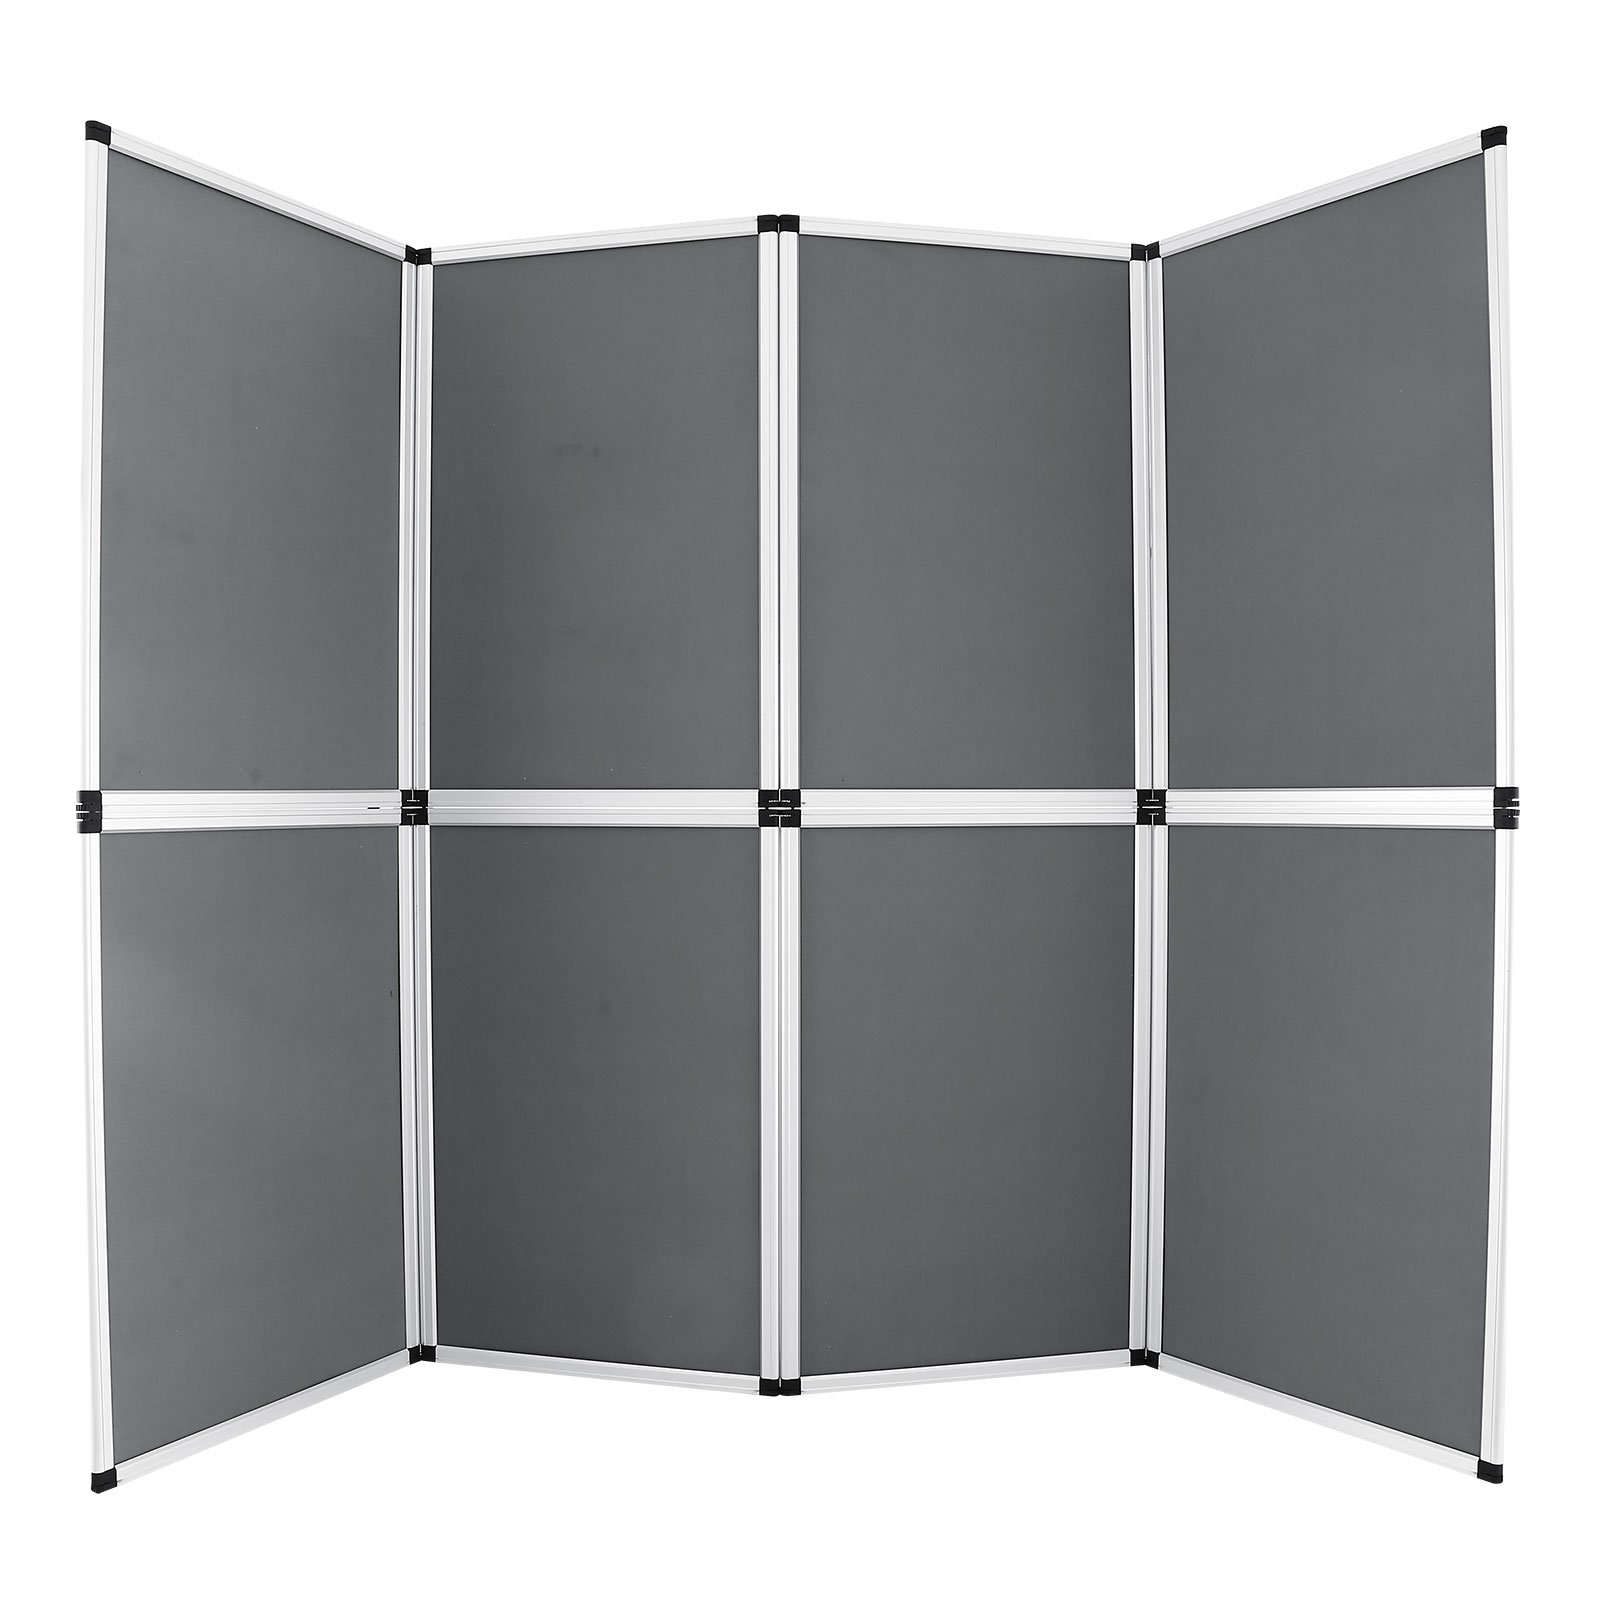 Happybuy Trade Show Display 8 Panel Panel Screen Each Panel is 24x36 Inches Folding Screen with Gray Velcro-Receptive Fabric (8 panels) by Happybuy